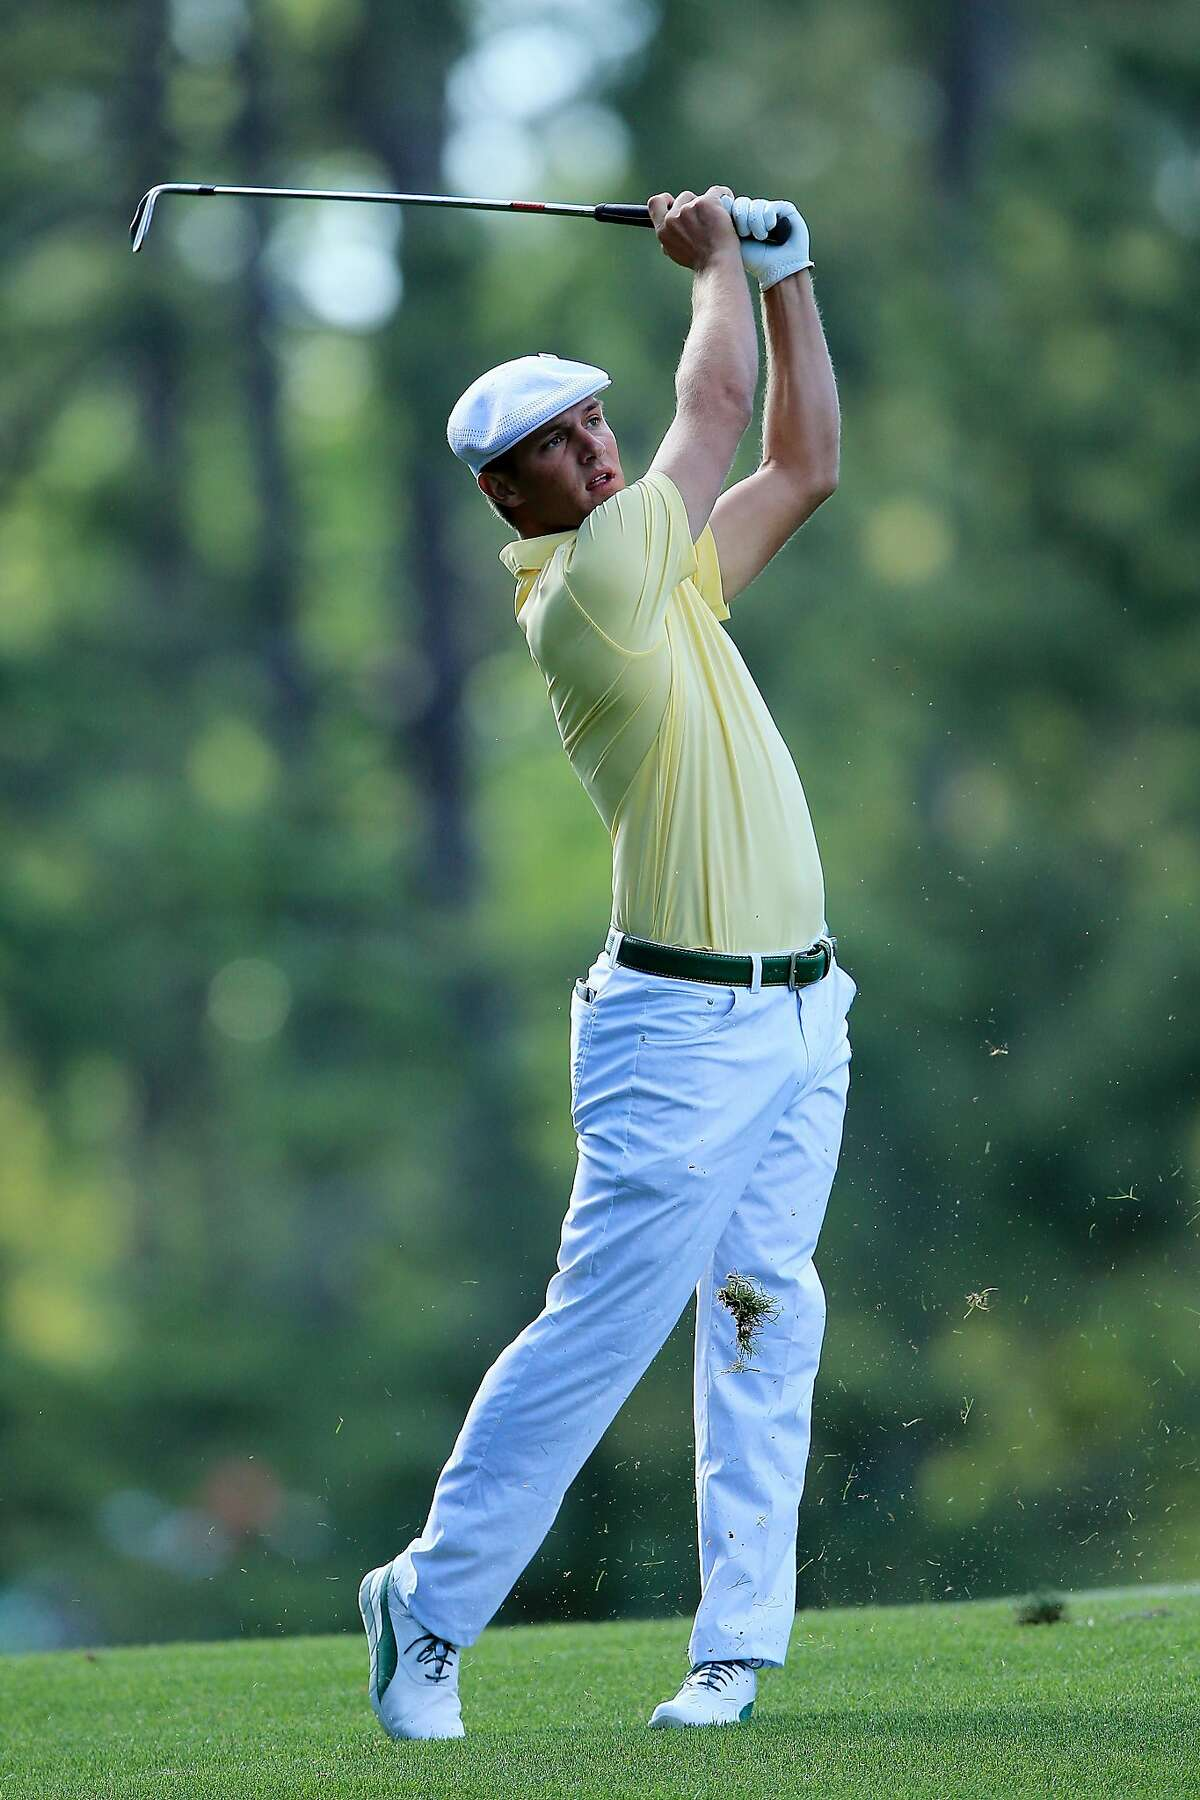 AUGUSTA, GEORGIA - APRIL 08: Amateur Bryson DeChambeau of the United States plays a shot on the 14th hole during the second round of the 2016 Masters Tournament at Augusta National Golf Club on April 8, 2016 in Augusta, Georgia. ~~